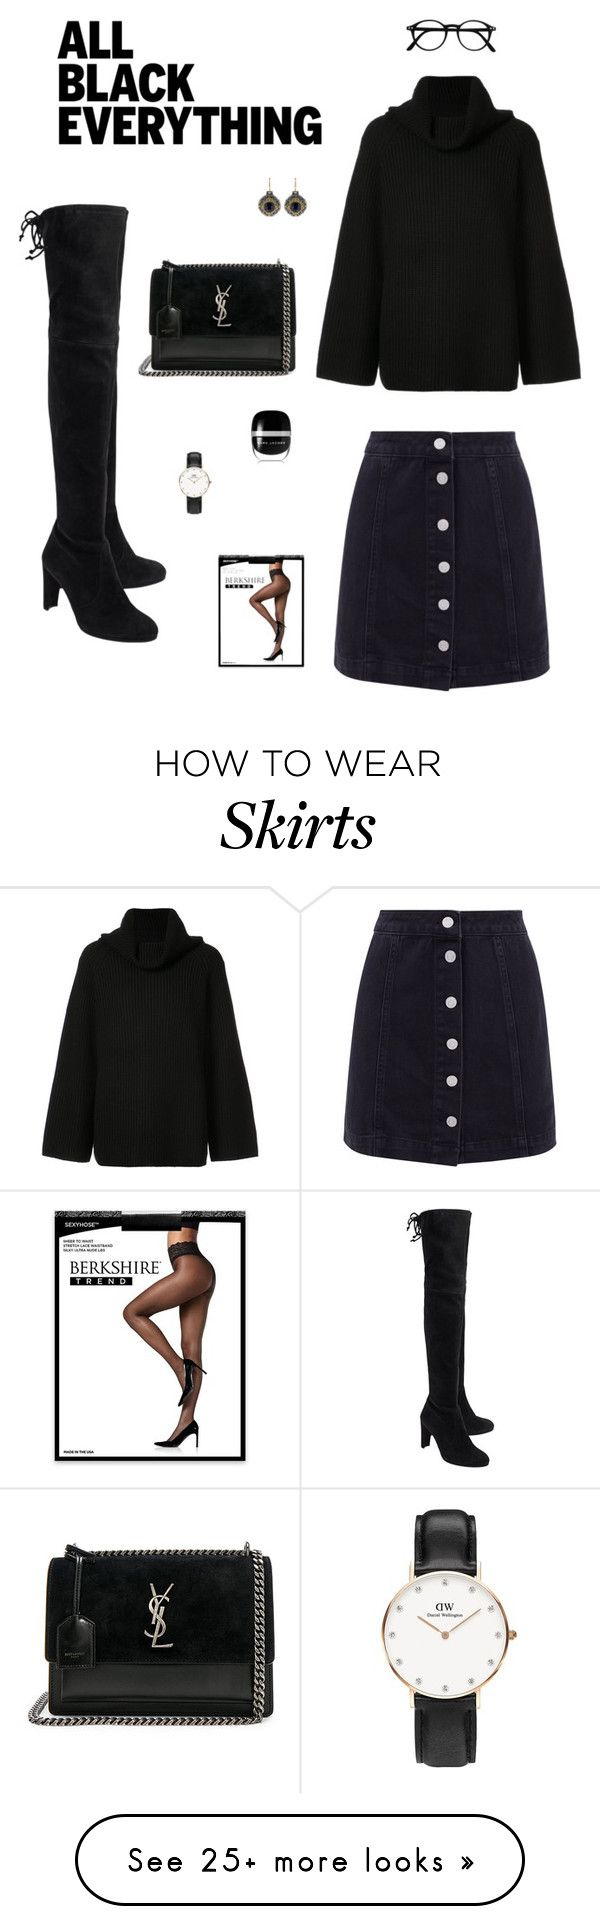 """""""Jeans skirt, cozy knit & overknee boots : all black everything"""" by sept8th on Polyvore featuring Stuart Weitzman, Chloé, Konstantino, Daniel Wellington, Yves Saint Laurent, Berkshire, Marc Jacobs and allblackoutfit"""